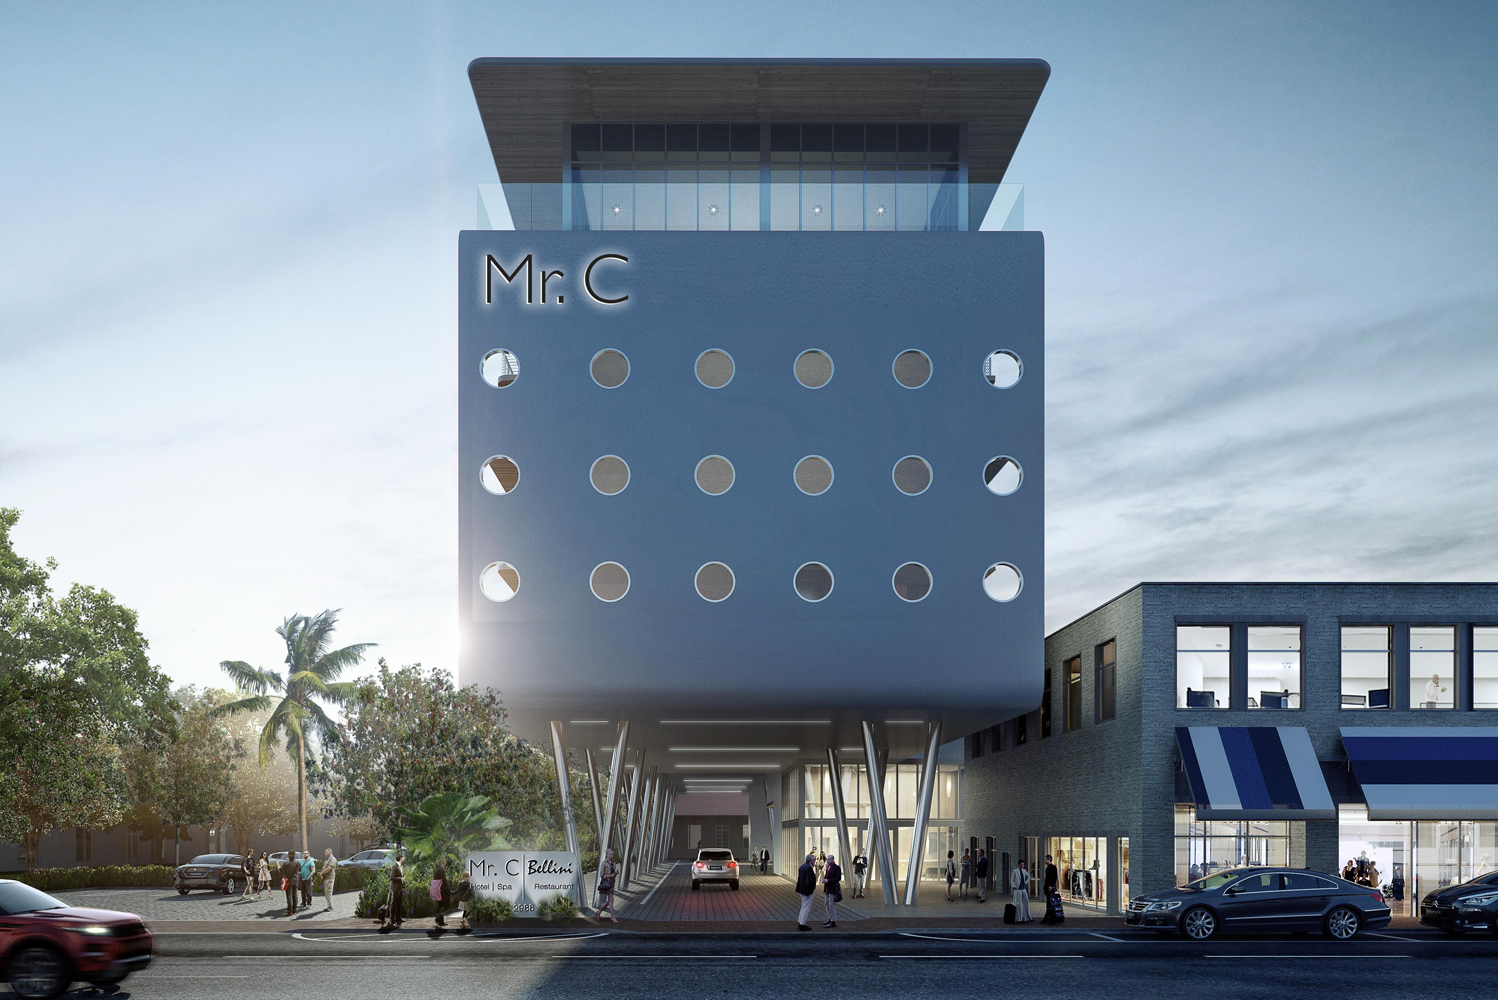 Mr. C Hotel is slated to open its first property in Florida this spring 2019.